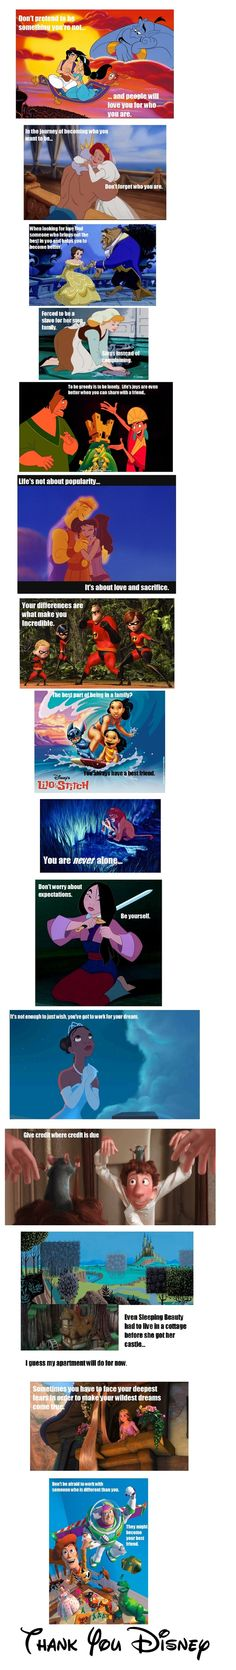 Learning from DIsney(: